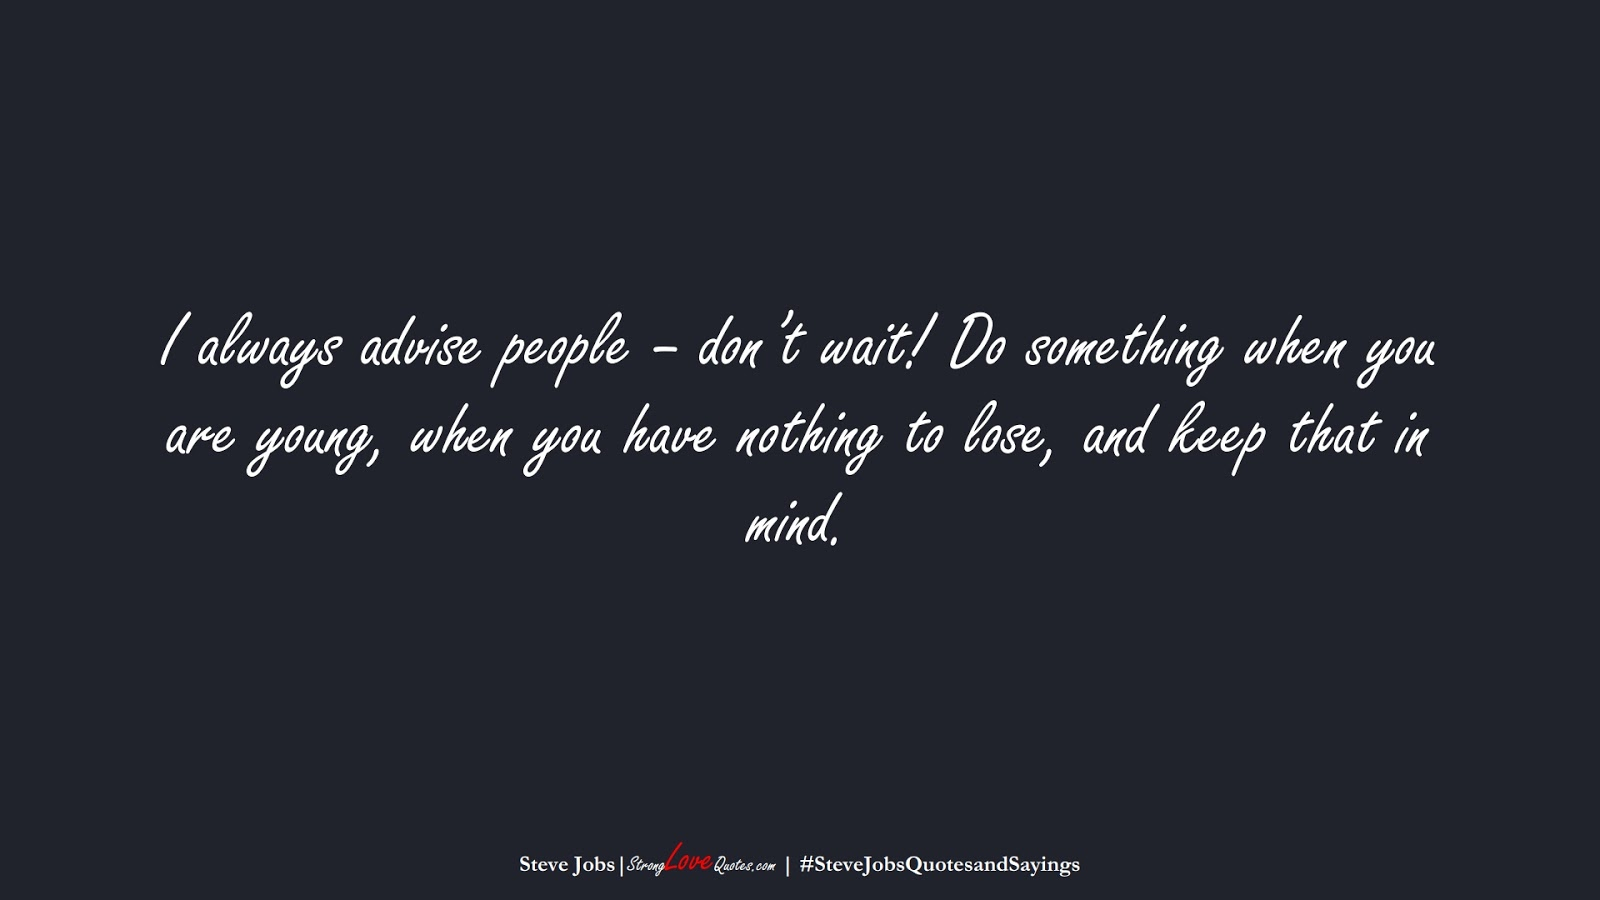 I always advise people – don't wait! Do something when you are young, when you have nothing to lose, and keep that in mind. (Steve Jobs);  #SteveJobsQuotesandSayings